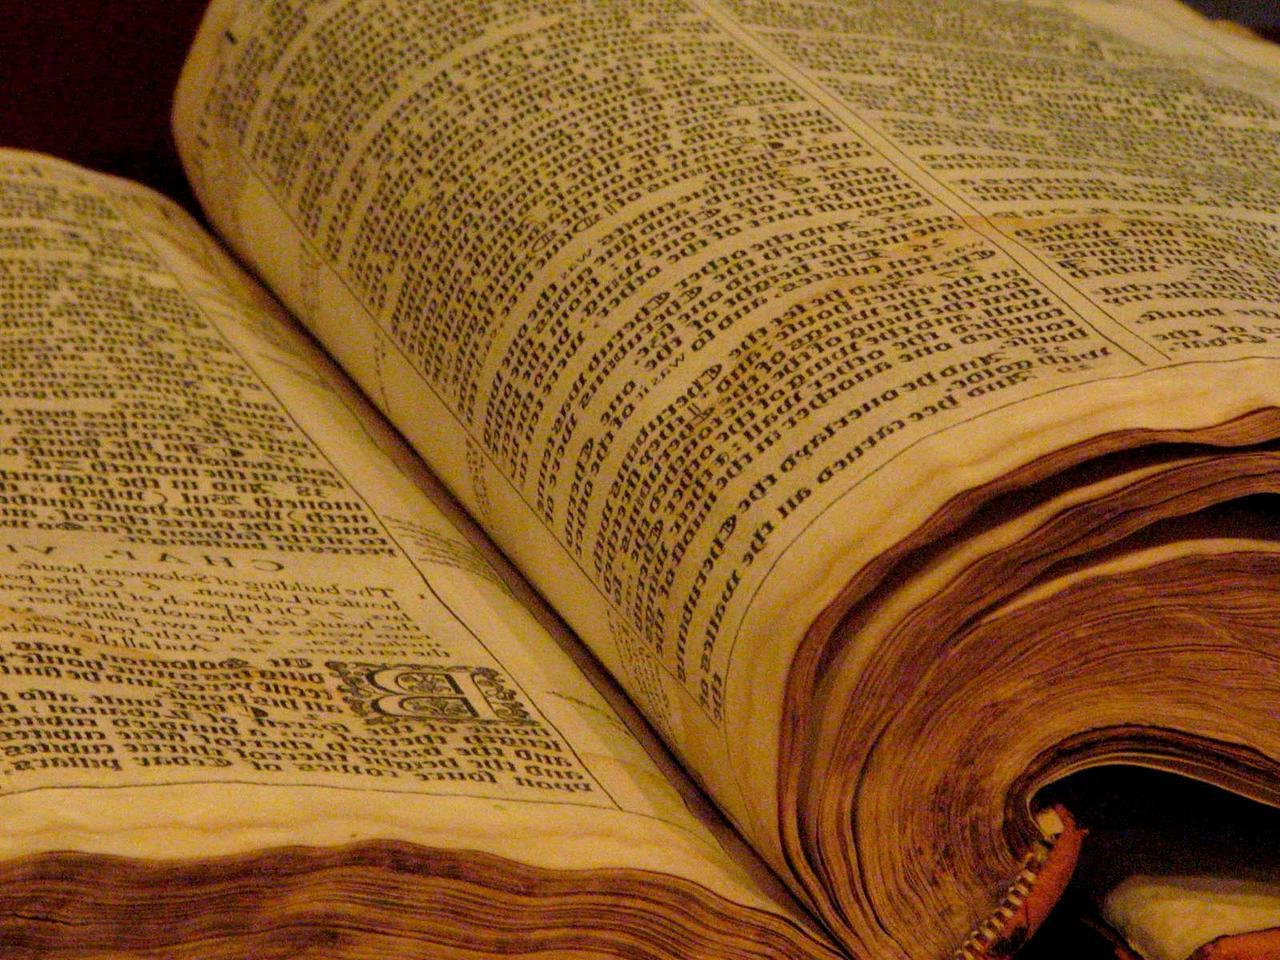 Ye olde Bible hailed as